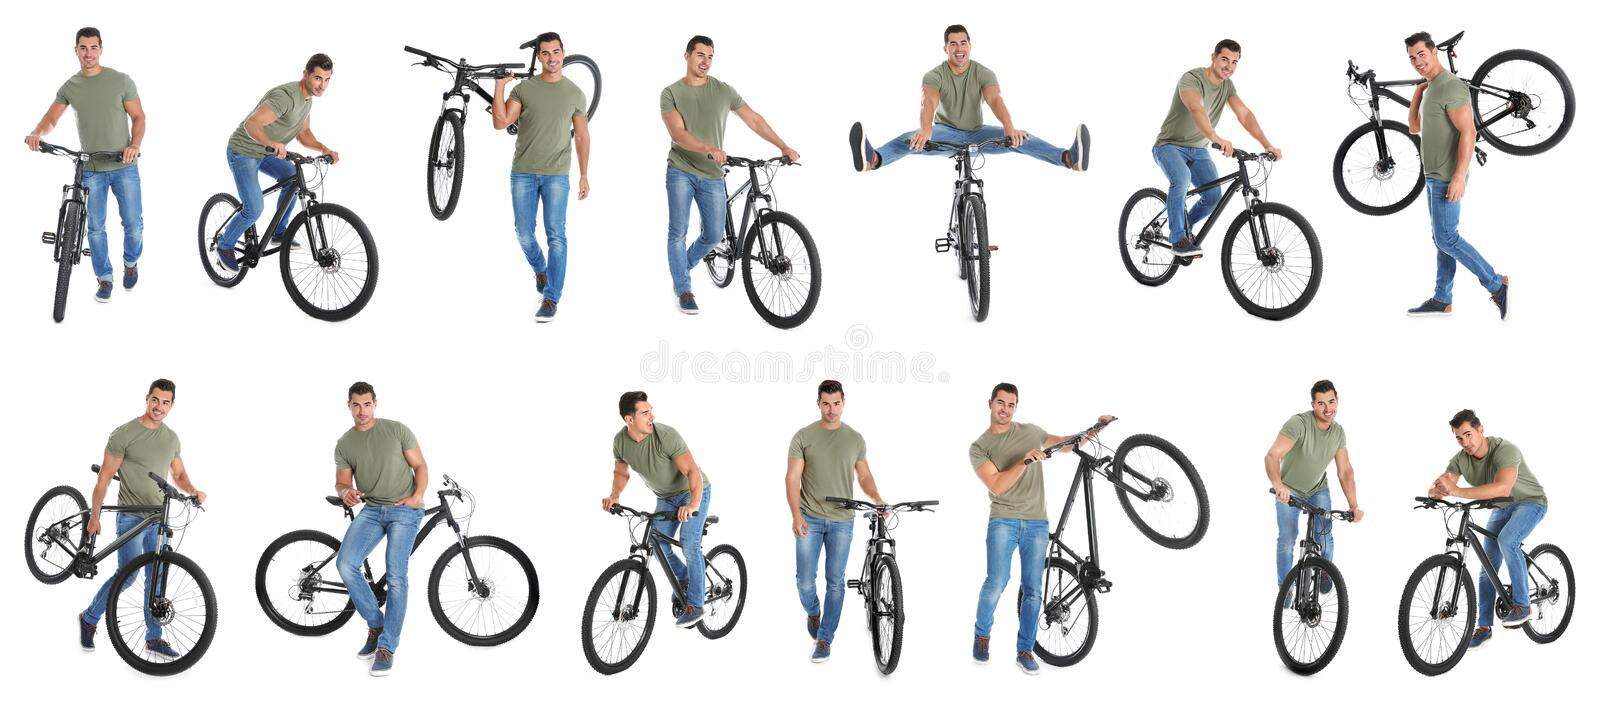 Collage of handsome young man with bicycle on background stock photography